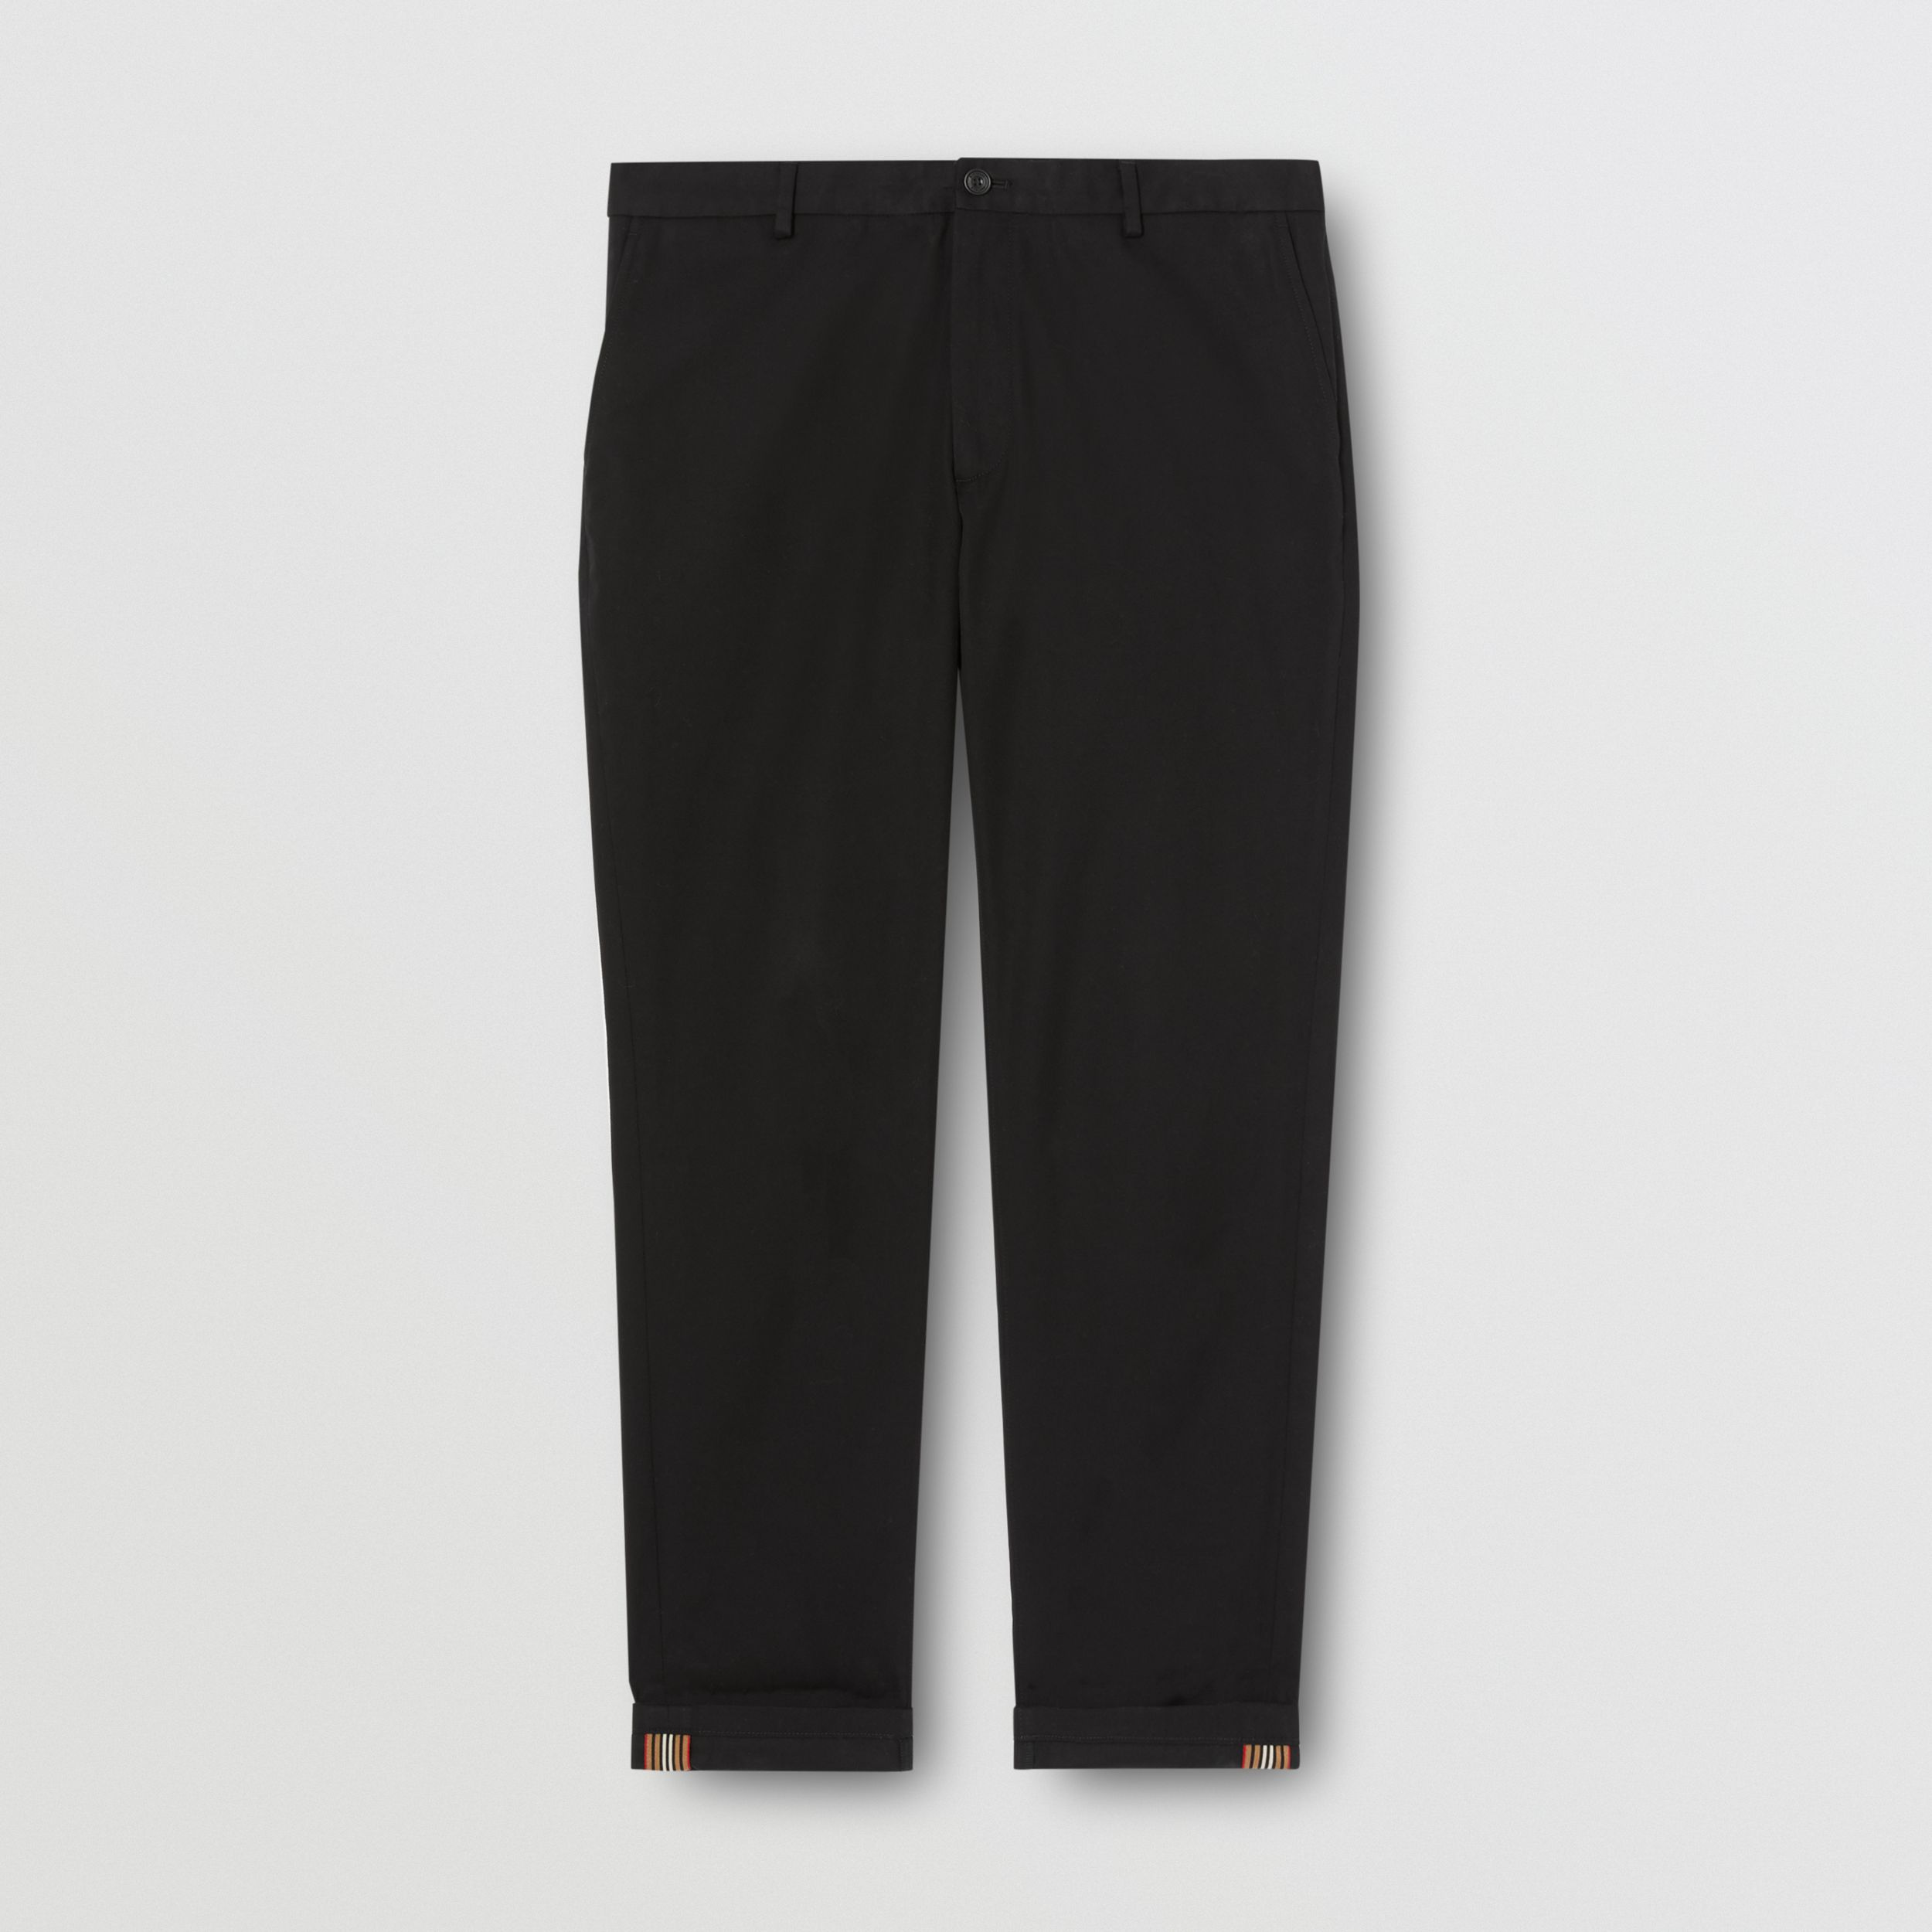 Slim Fit Cotton Chinos in Black - Men | Burberry United Kingdom - 4